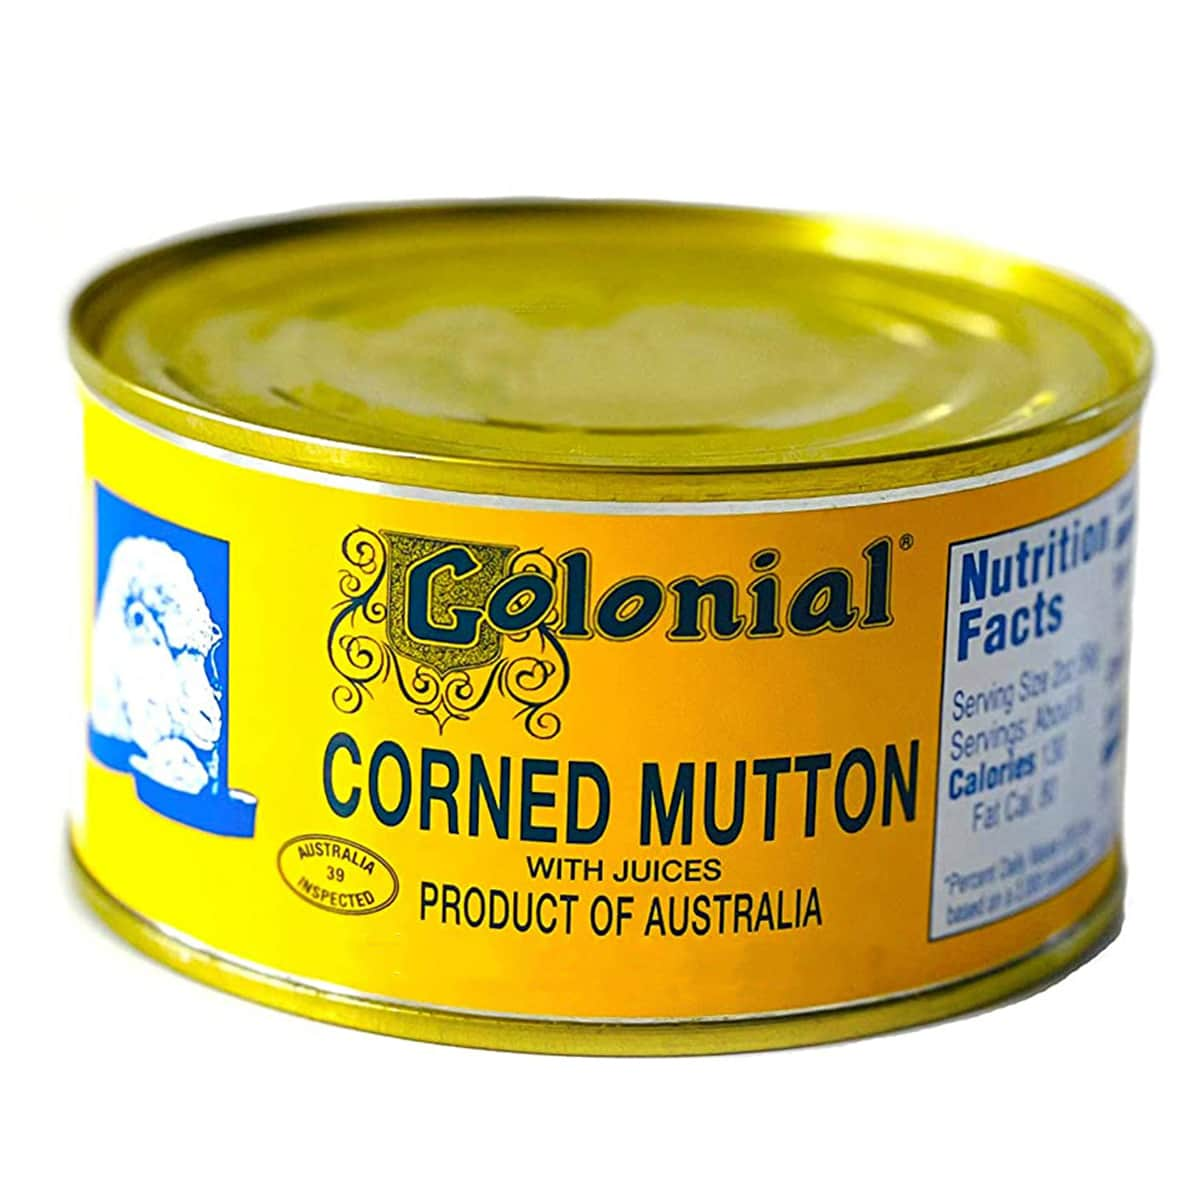 Buy Colonial Corned Mutton with Juices - 340 gm